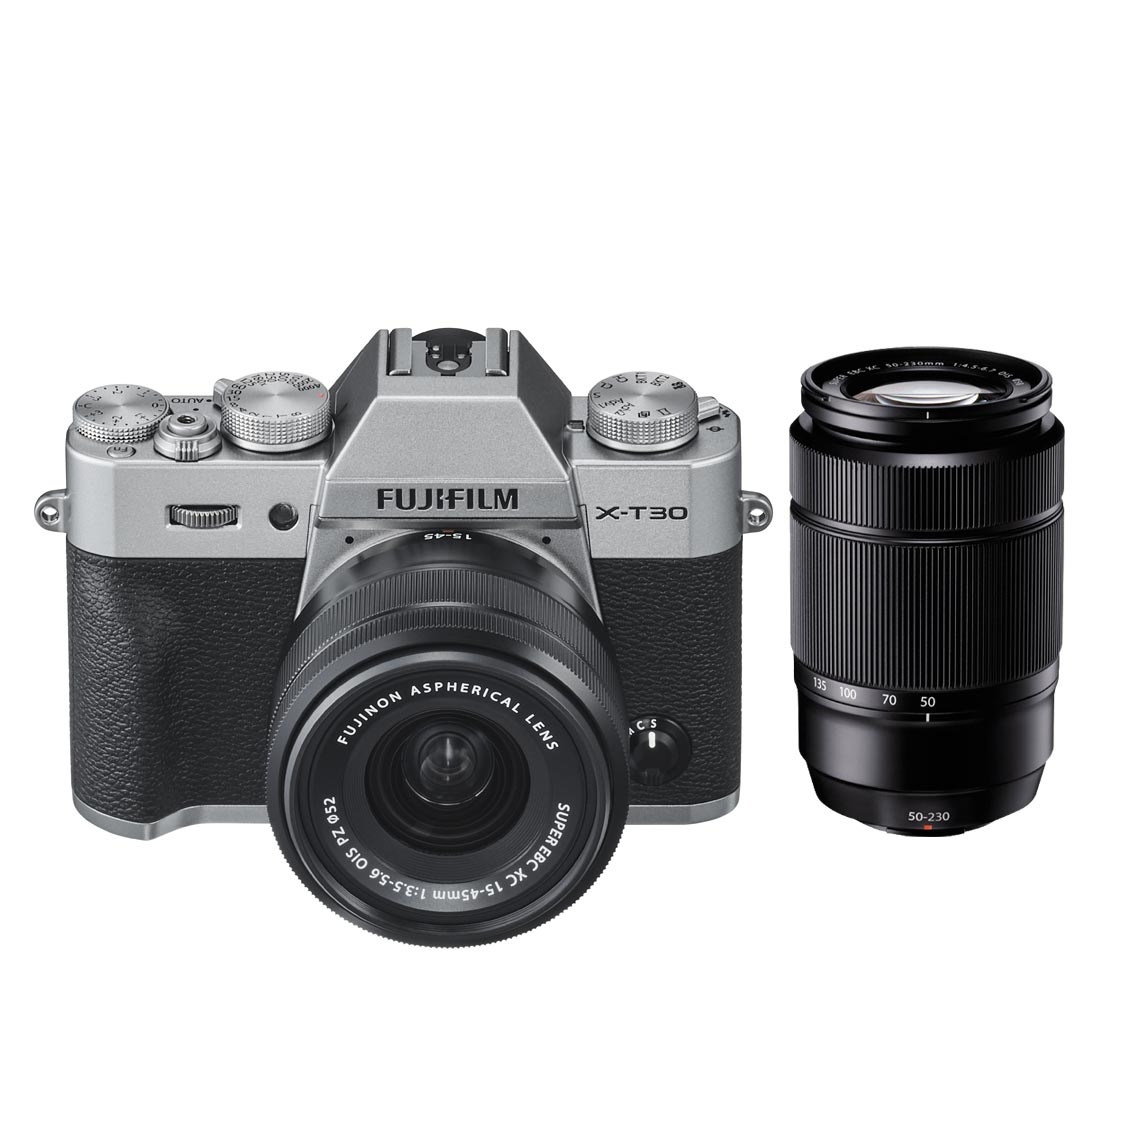 Fujifilm X-T30 Camera (silver) with 15-45mm and 50-230mm Lenses